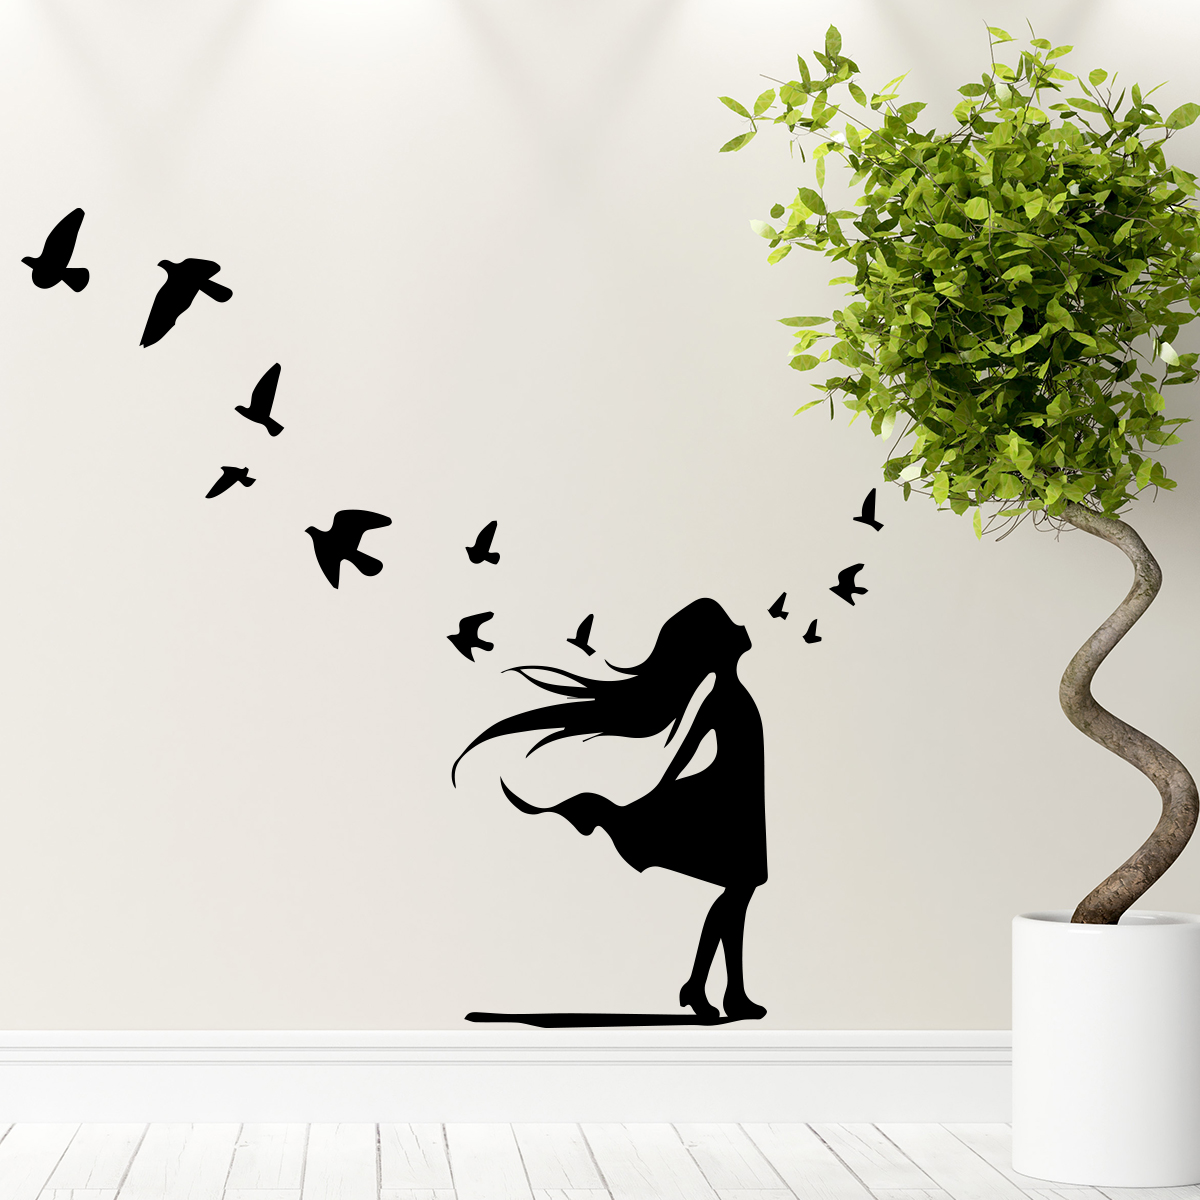 sticker petite fille et vol d 39 oiseaux animaux oiseaux. Black Bedroom Furniture Sets. Home Design Ideas